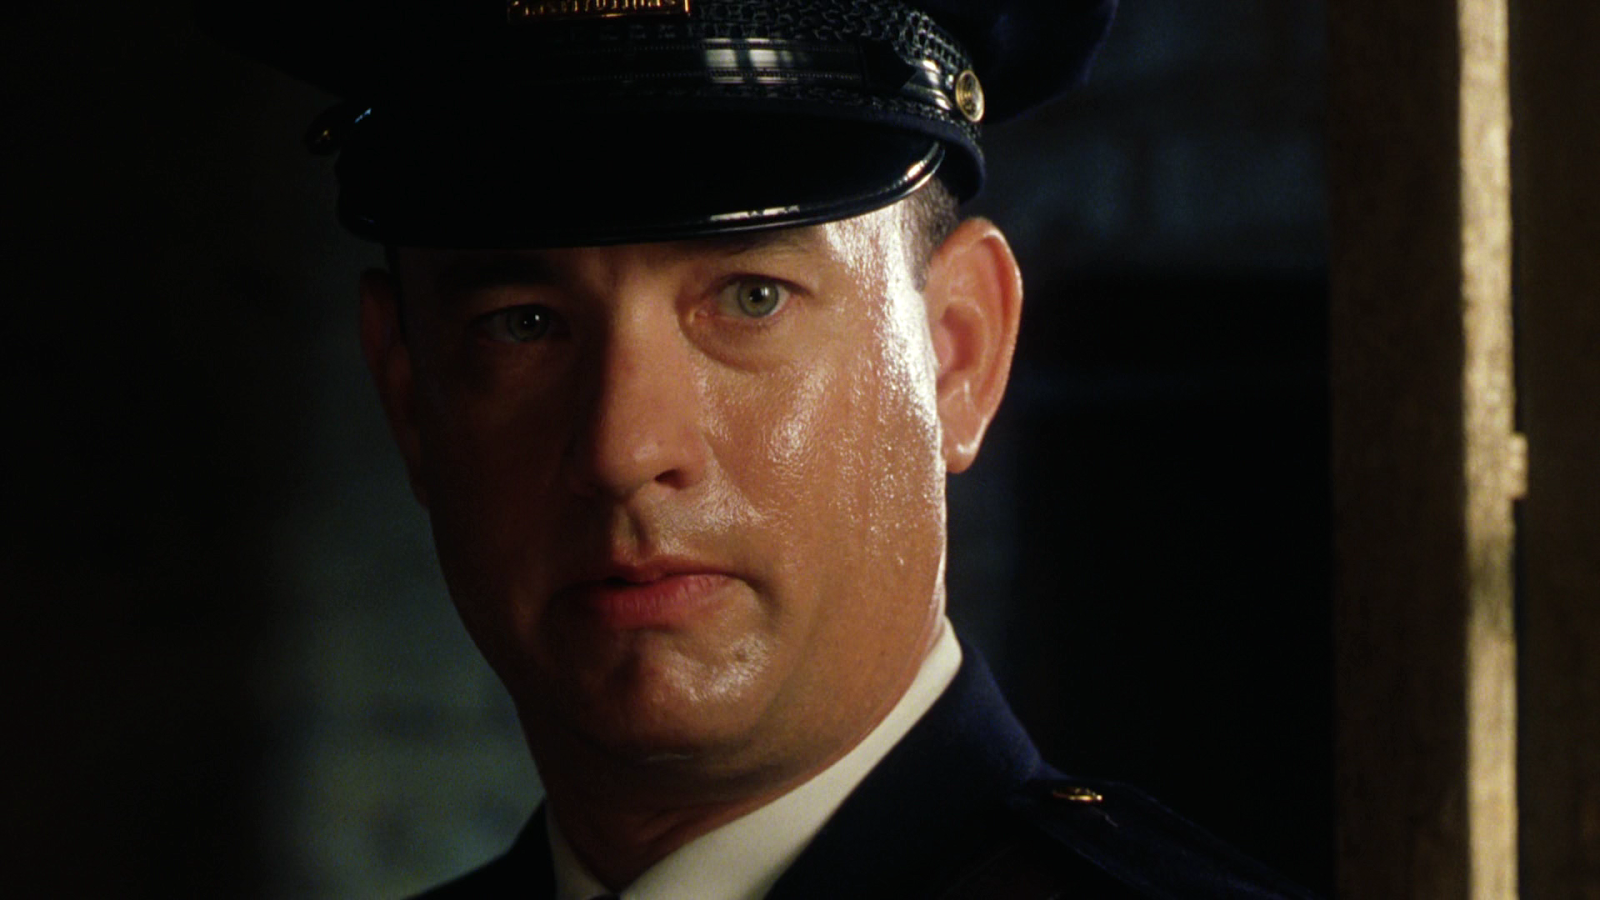 the green mile themes The green mile is an epic, running over three hours, and a powerfully-told story that lays bare the triumphs and tragedies of the human condition and though the film's intensity occasionally falls from its wandering narrative, the green mile remains riveting nonetheless, touching on themes of redemption and justice, while illustrating how, for.